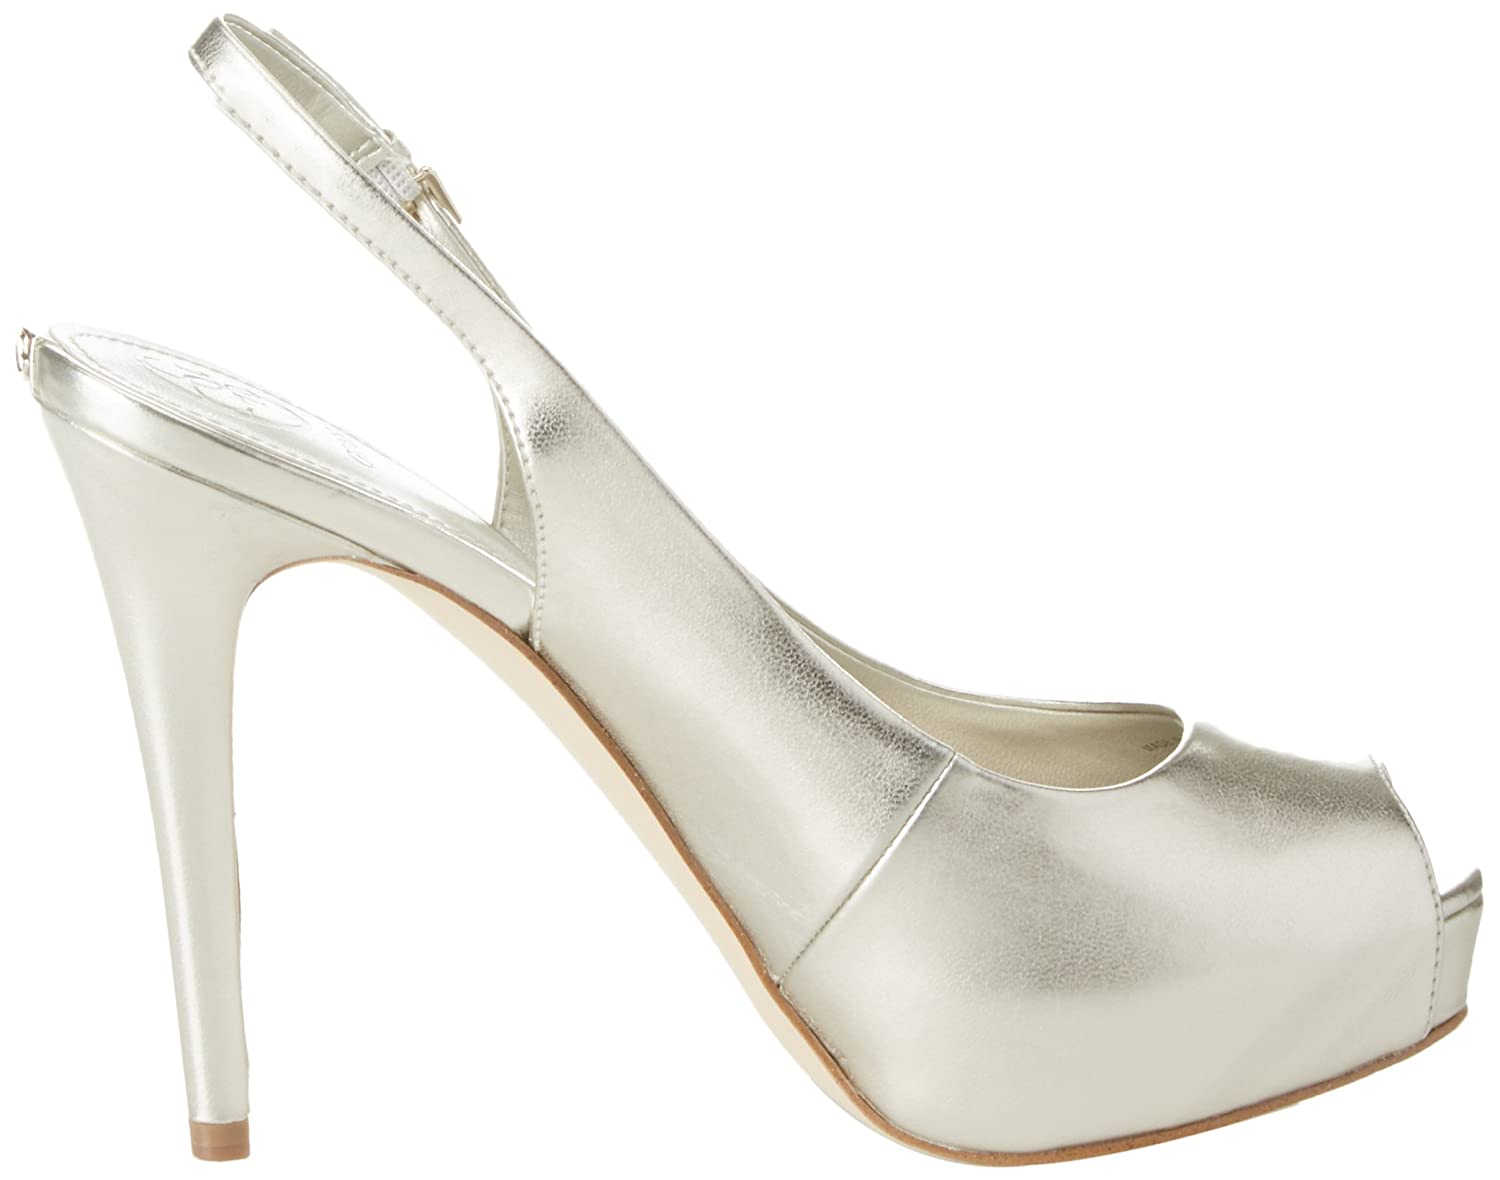 Guess Gold Damen Footwear Dress Sling Back Plateaupumps, Platino Gold Guess (Gold Plati) 1870a6